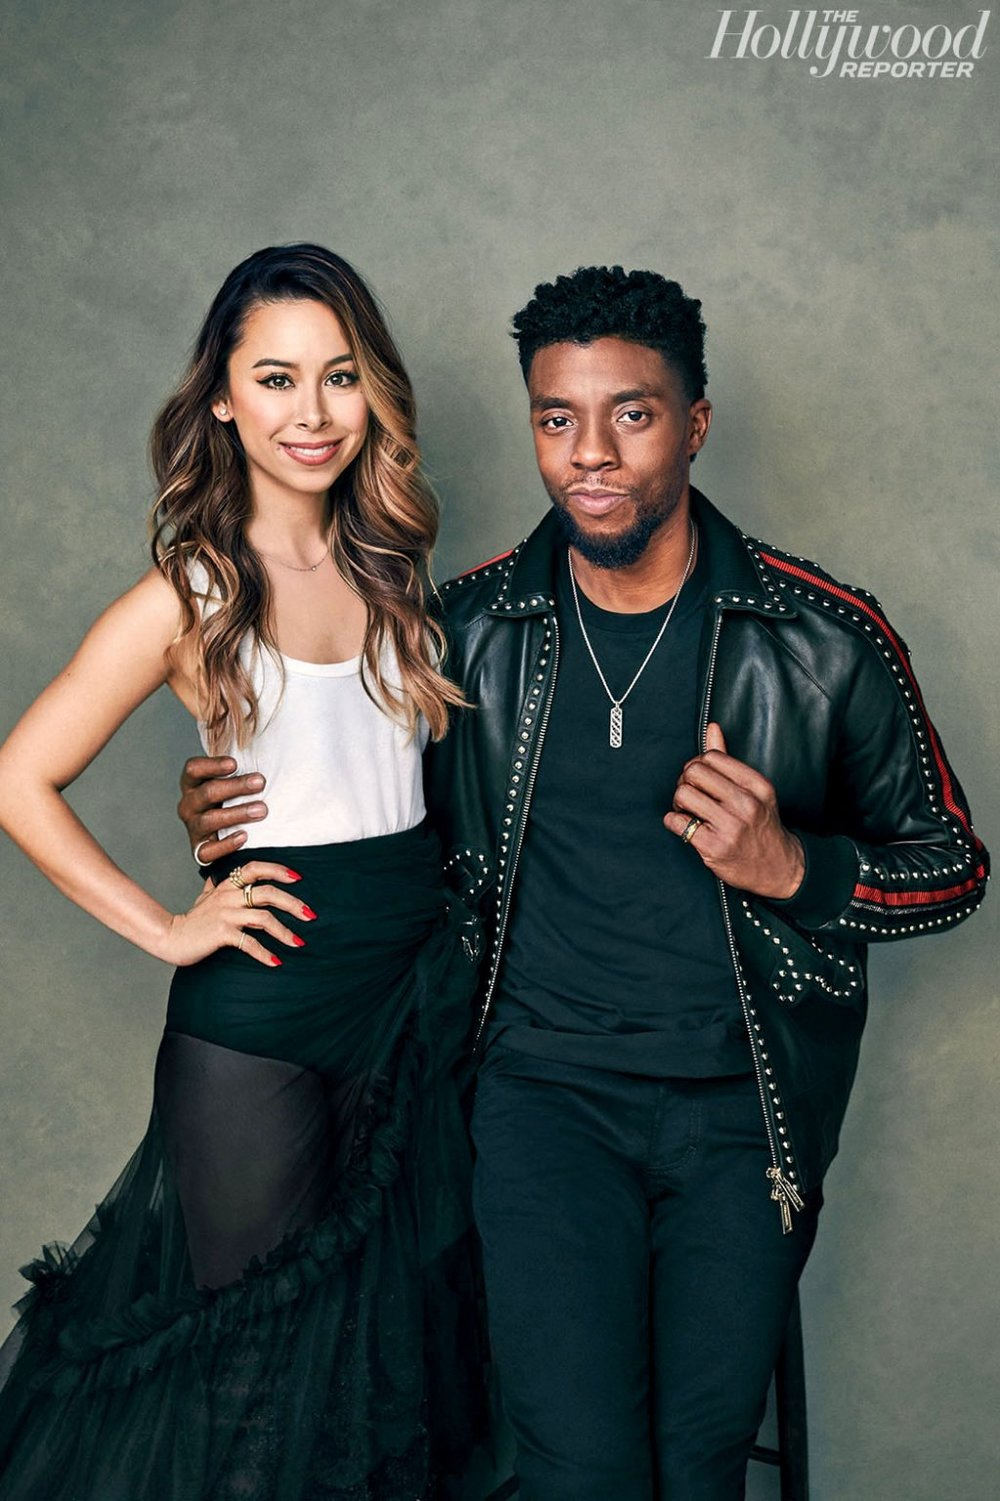 THE HOLLYWOOD REPORTER STARS OF STYLE CHADWICK BOSEMAN AND ASHLEY WESTON SITTING.jpg